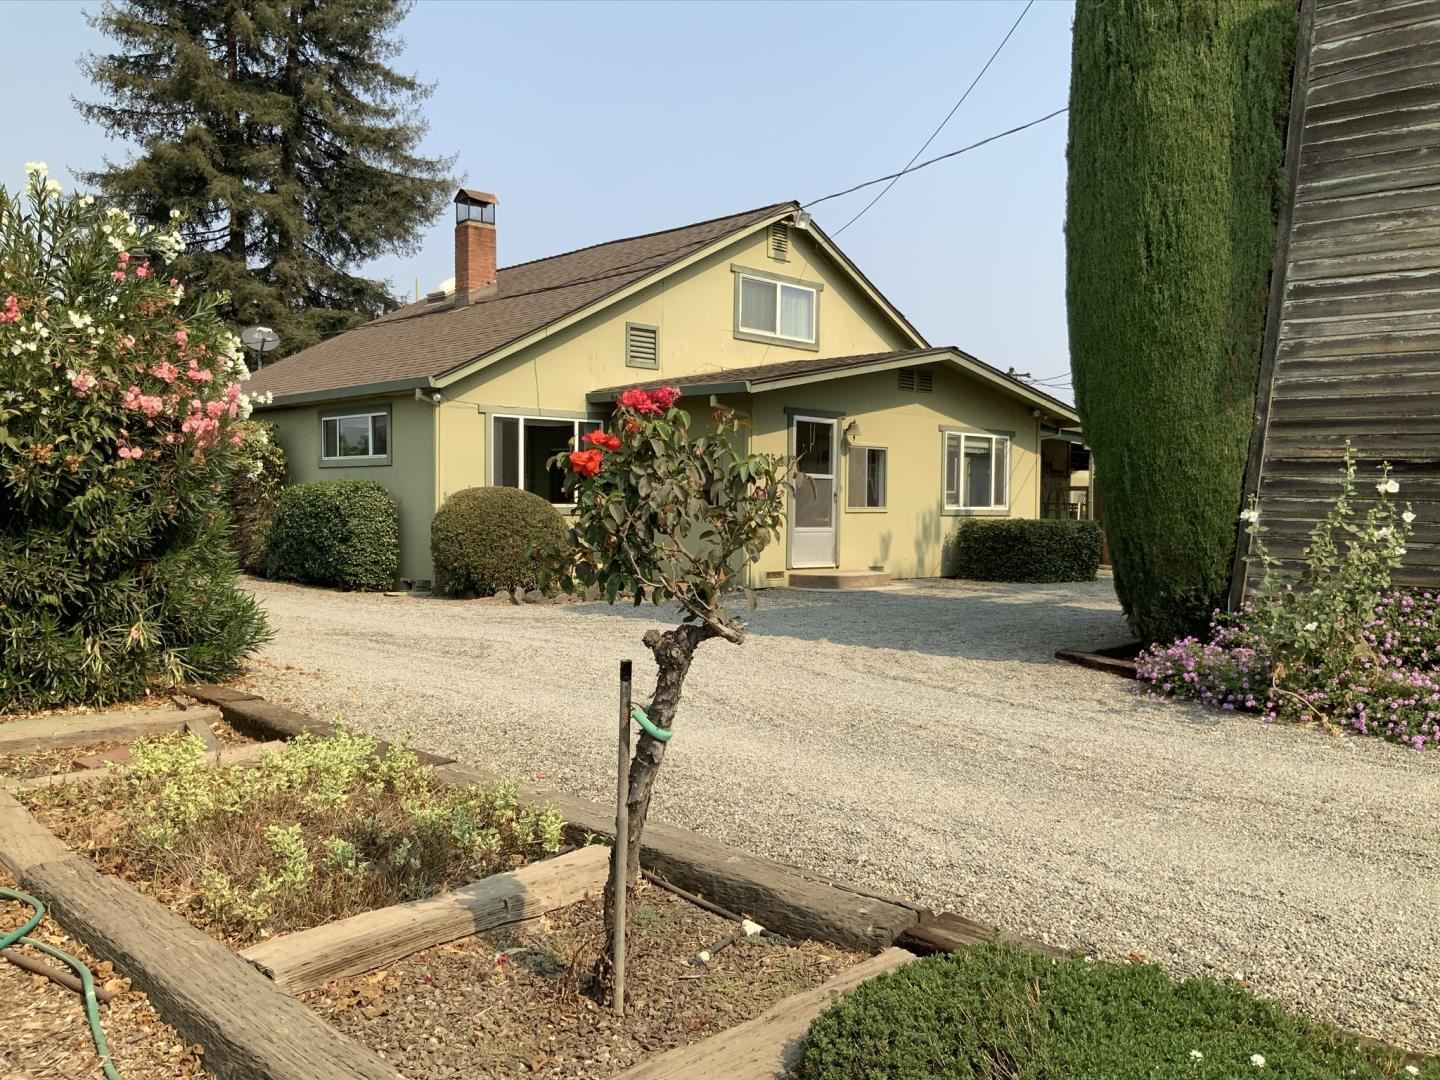 Photo for 325 Denio AVE A #A, GILROY, CA 95020 (MLS # ML81814683)